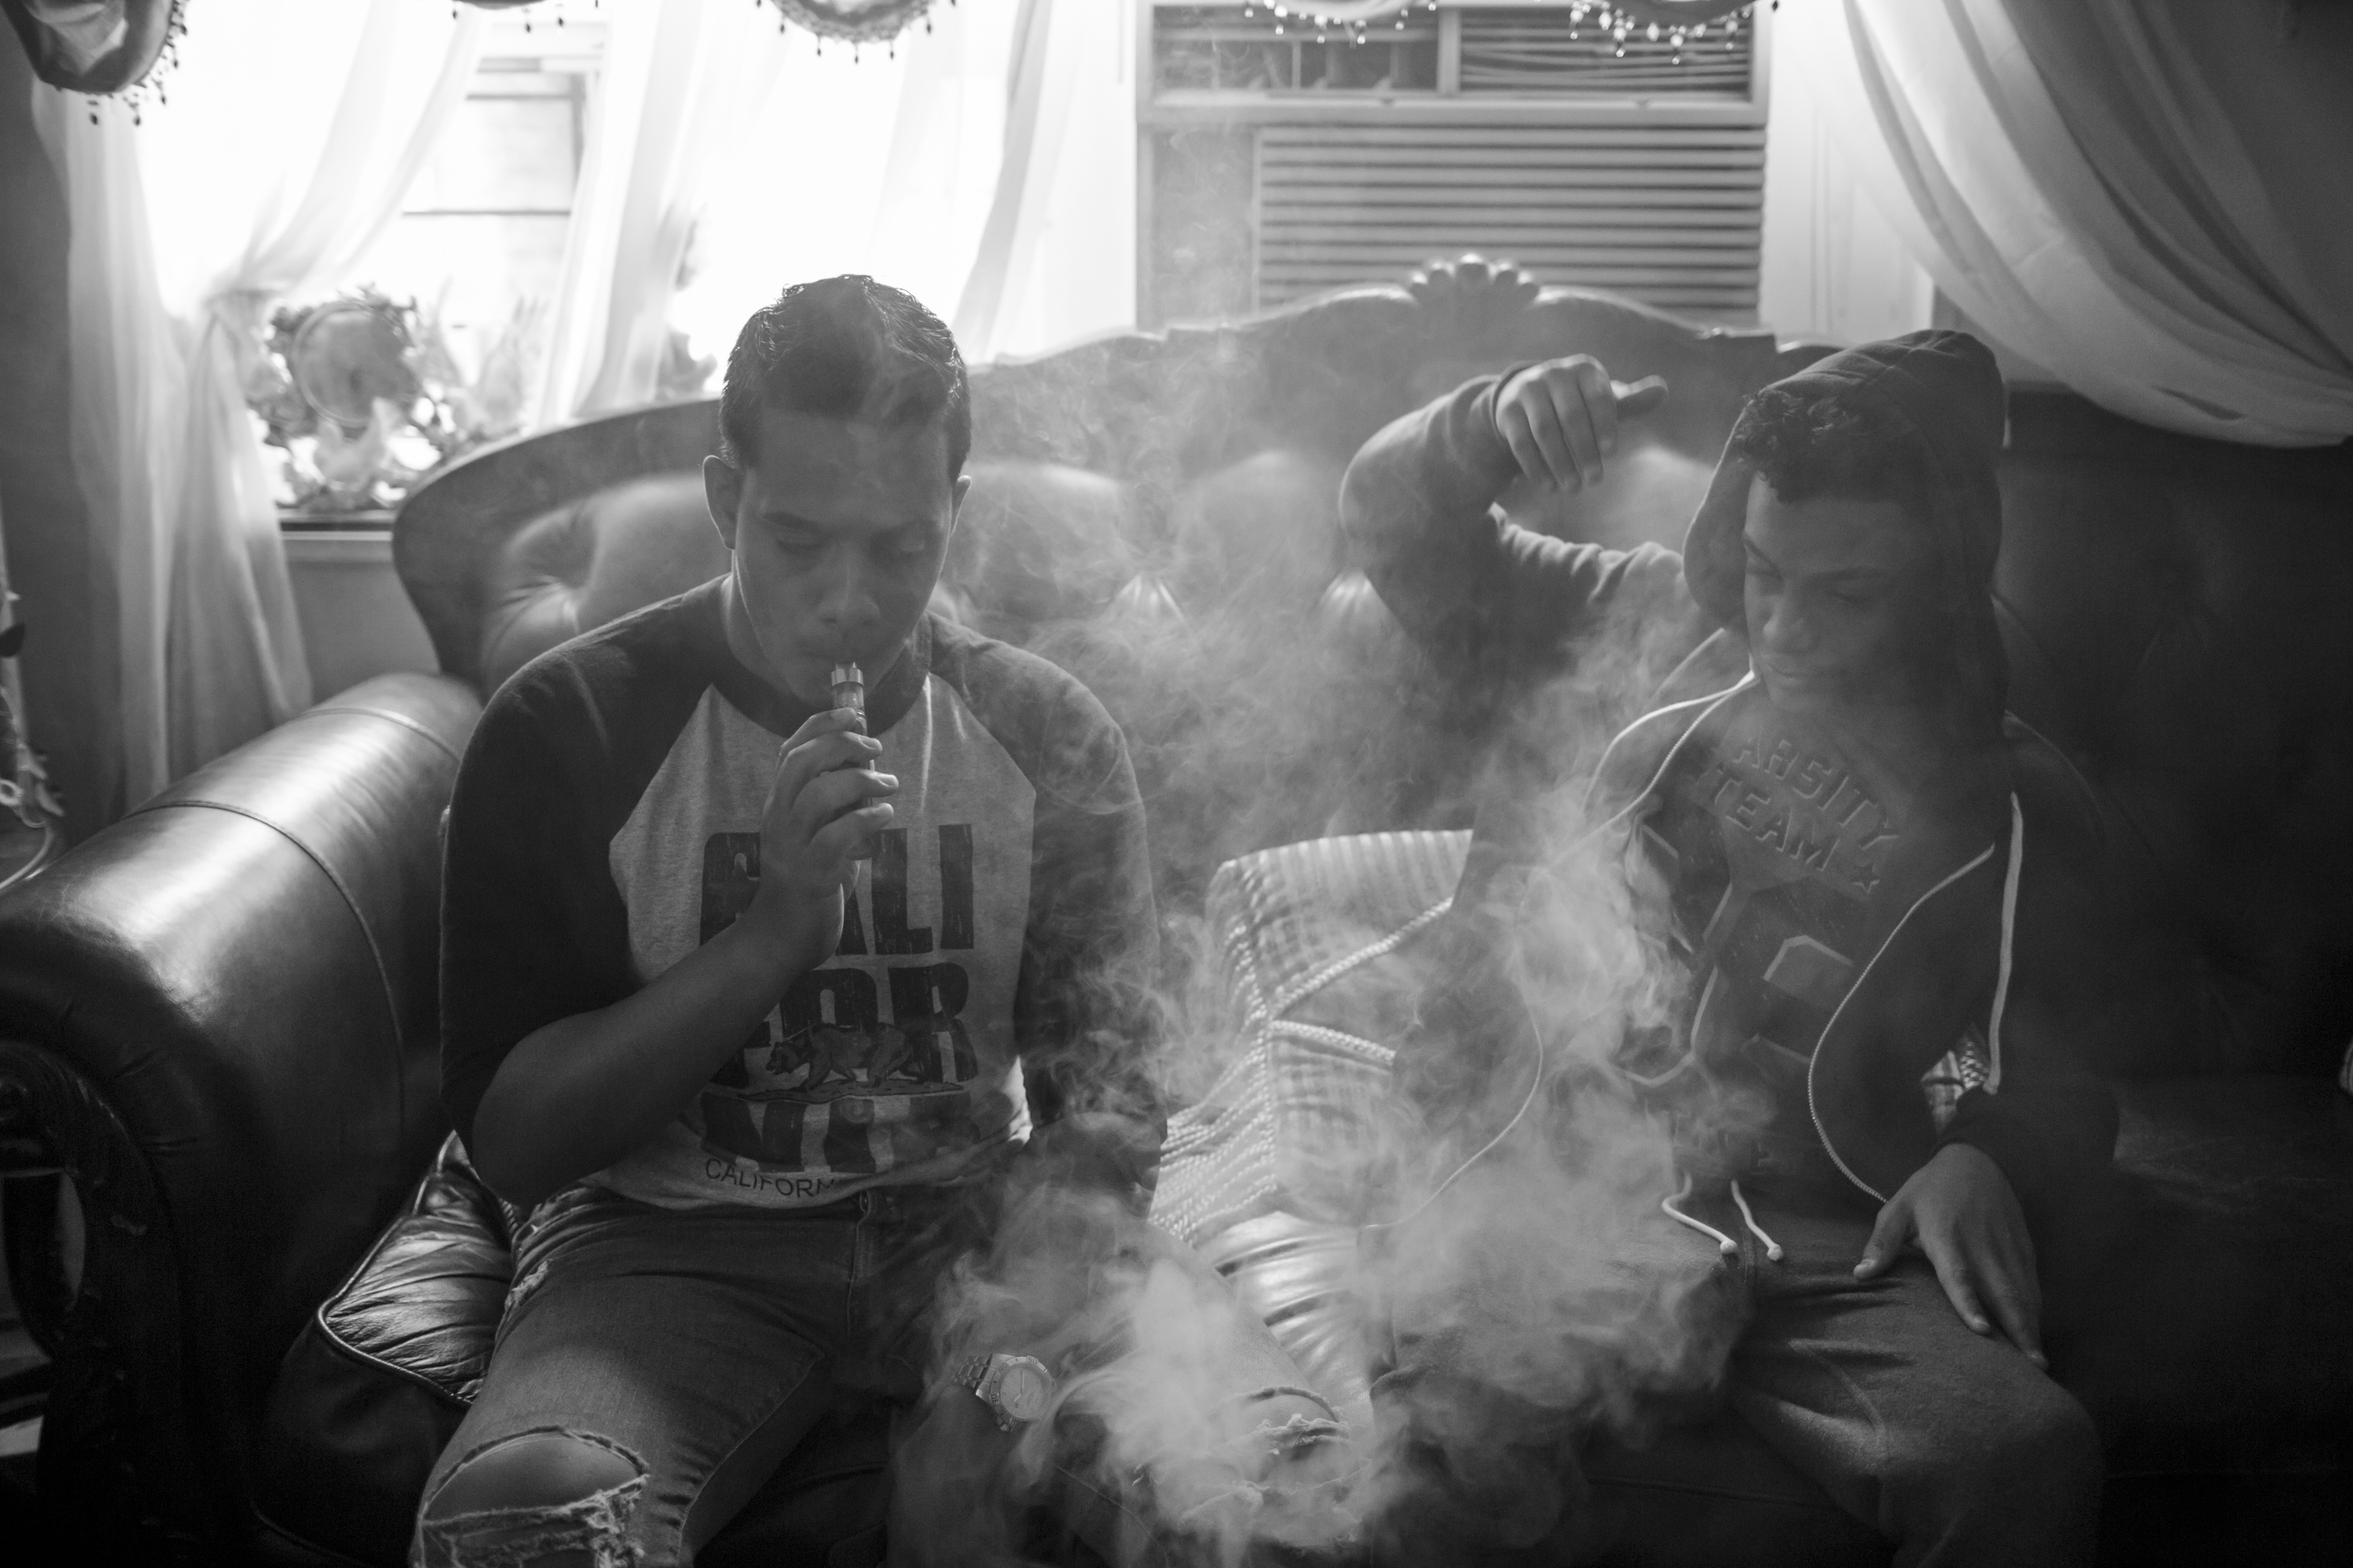 Chavier Leon vapes with his older brother in the living room of their apartment, May 14, 2016, Patterson Projects, Mott Haven, South Bronx. (Photo by Sarah Blesener/GroundTruth/Alexia Foundation)